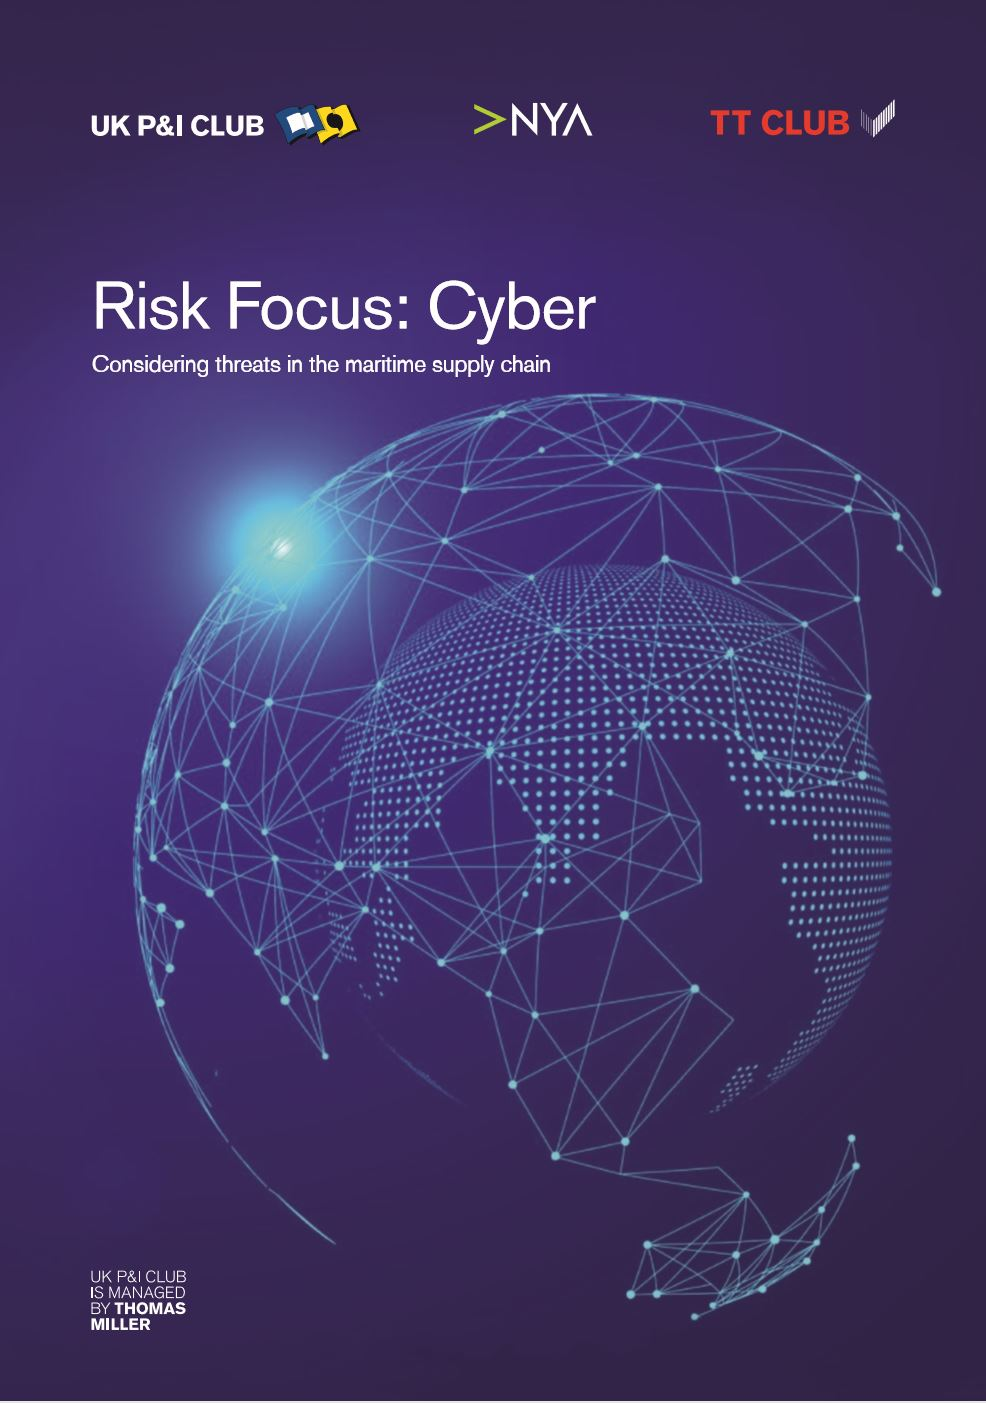 Risk Focus: Cyber - Considering threats in the maritime supply chain